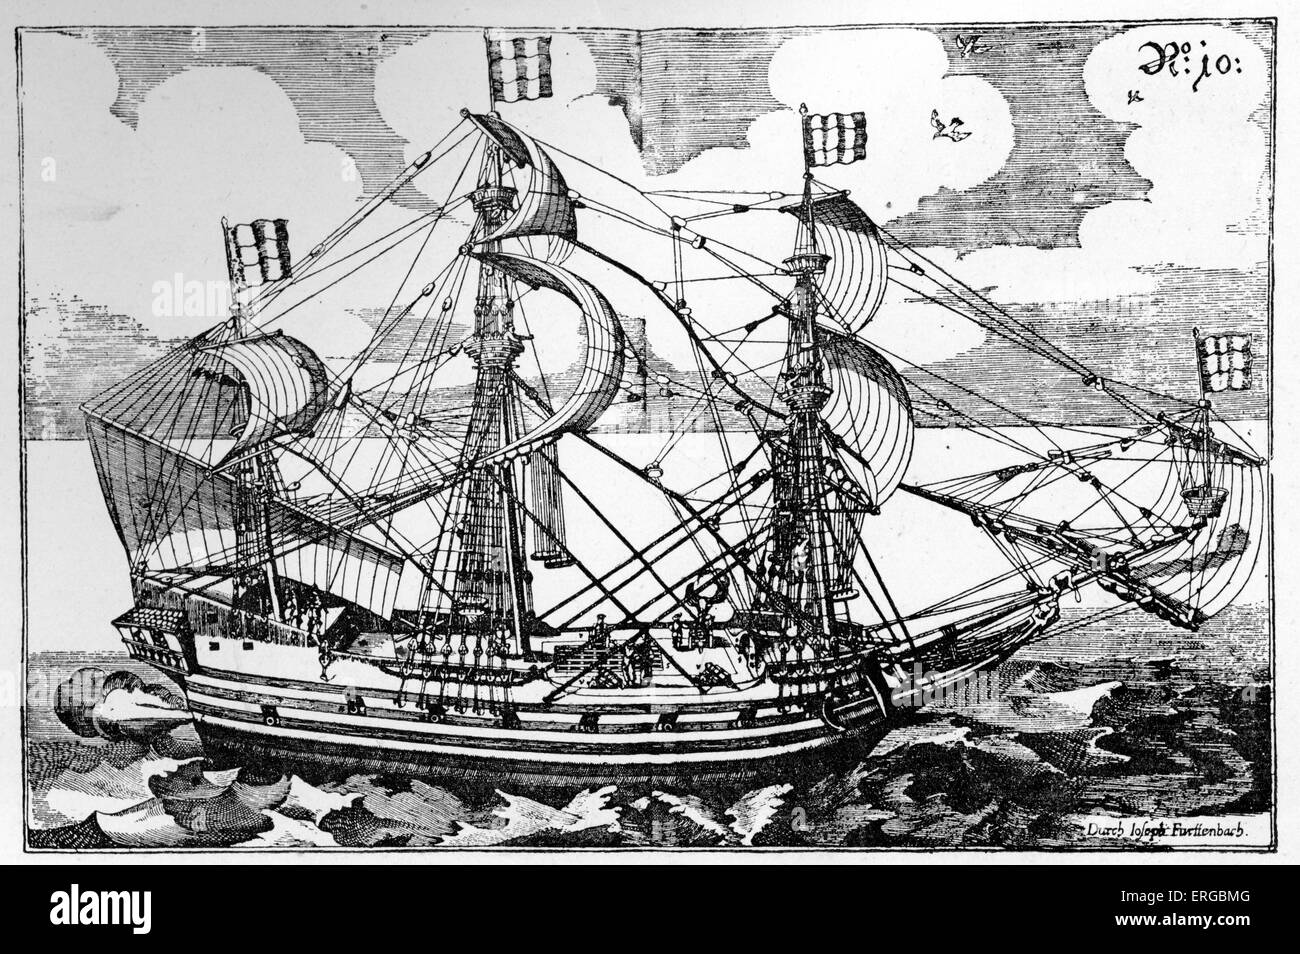 Galeasse - ketch used by pirates in 17th century. Both a sailing ship and rowing boat. From Furttenbach, Architectura - Stock Image